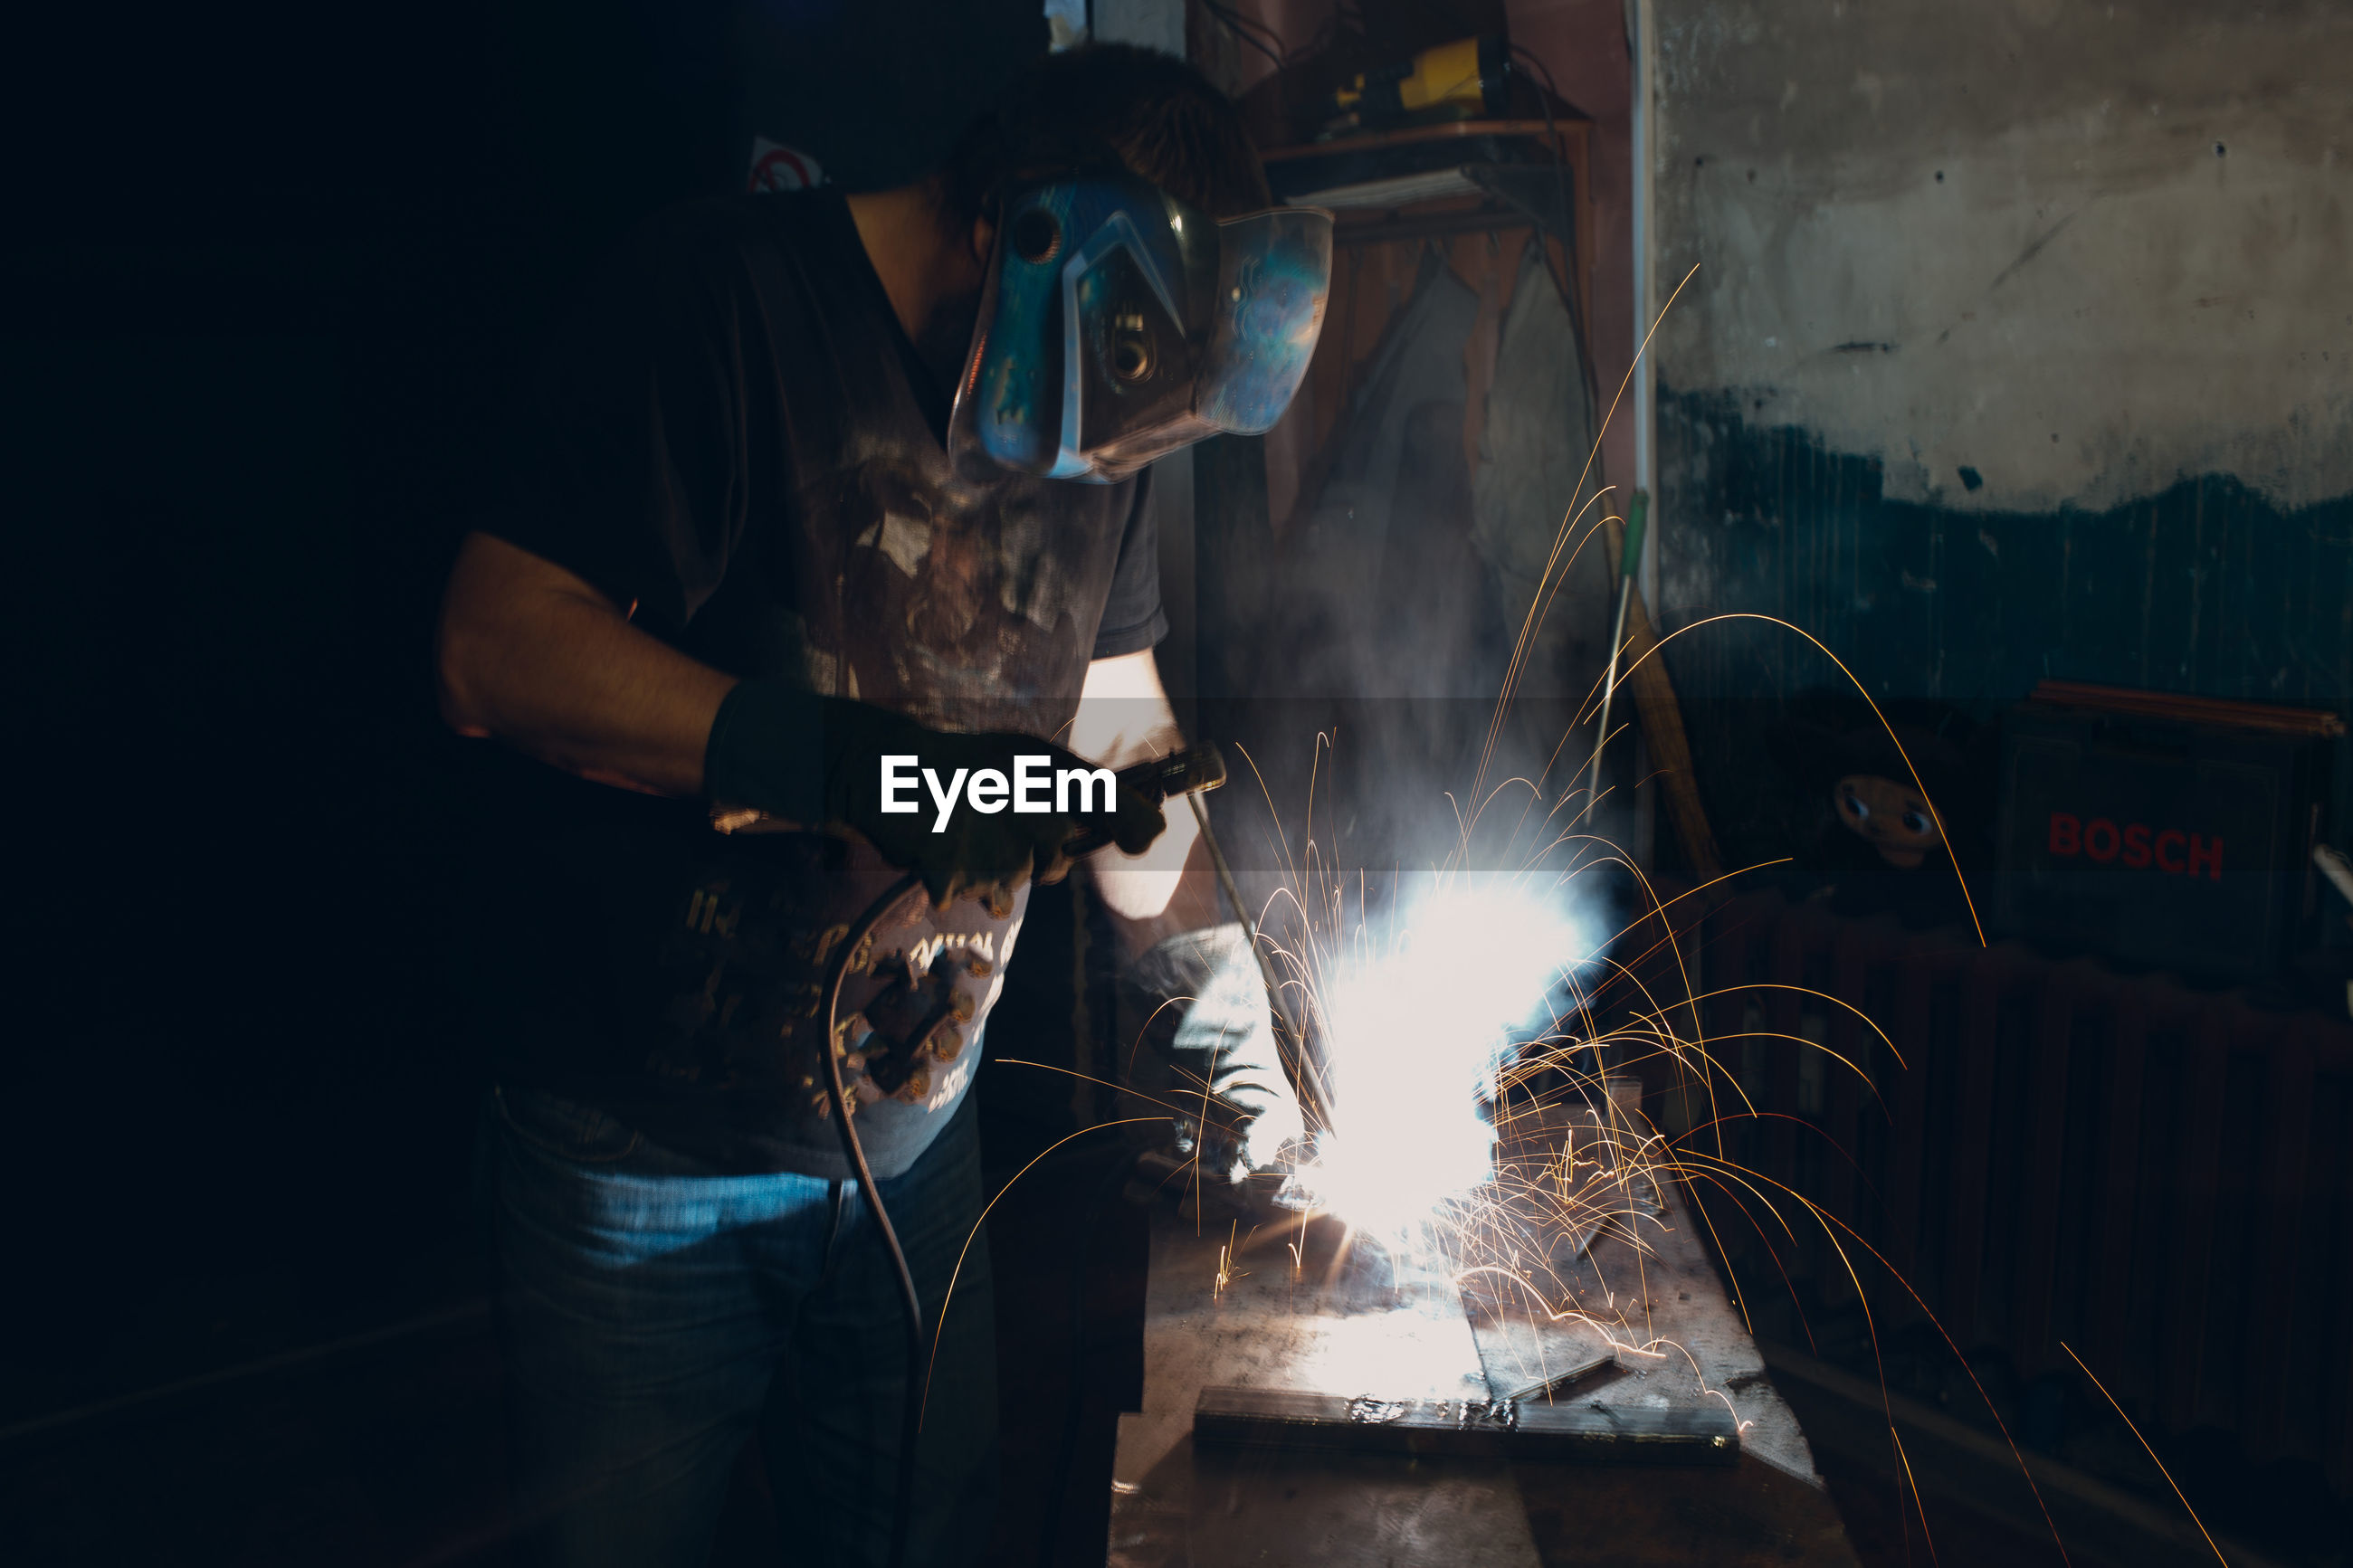 Man welding in workshop